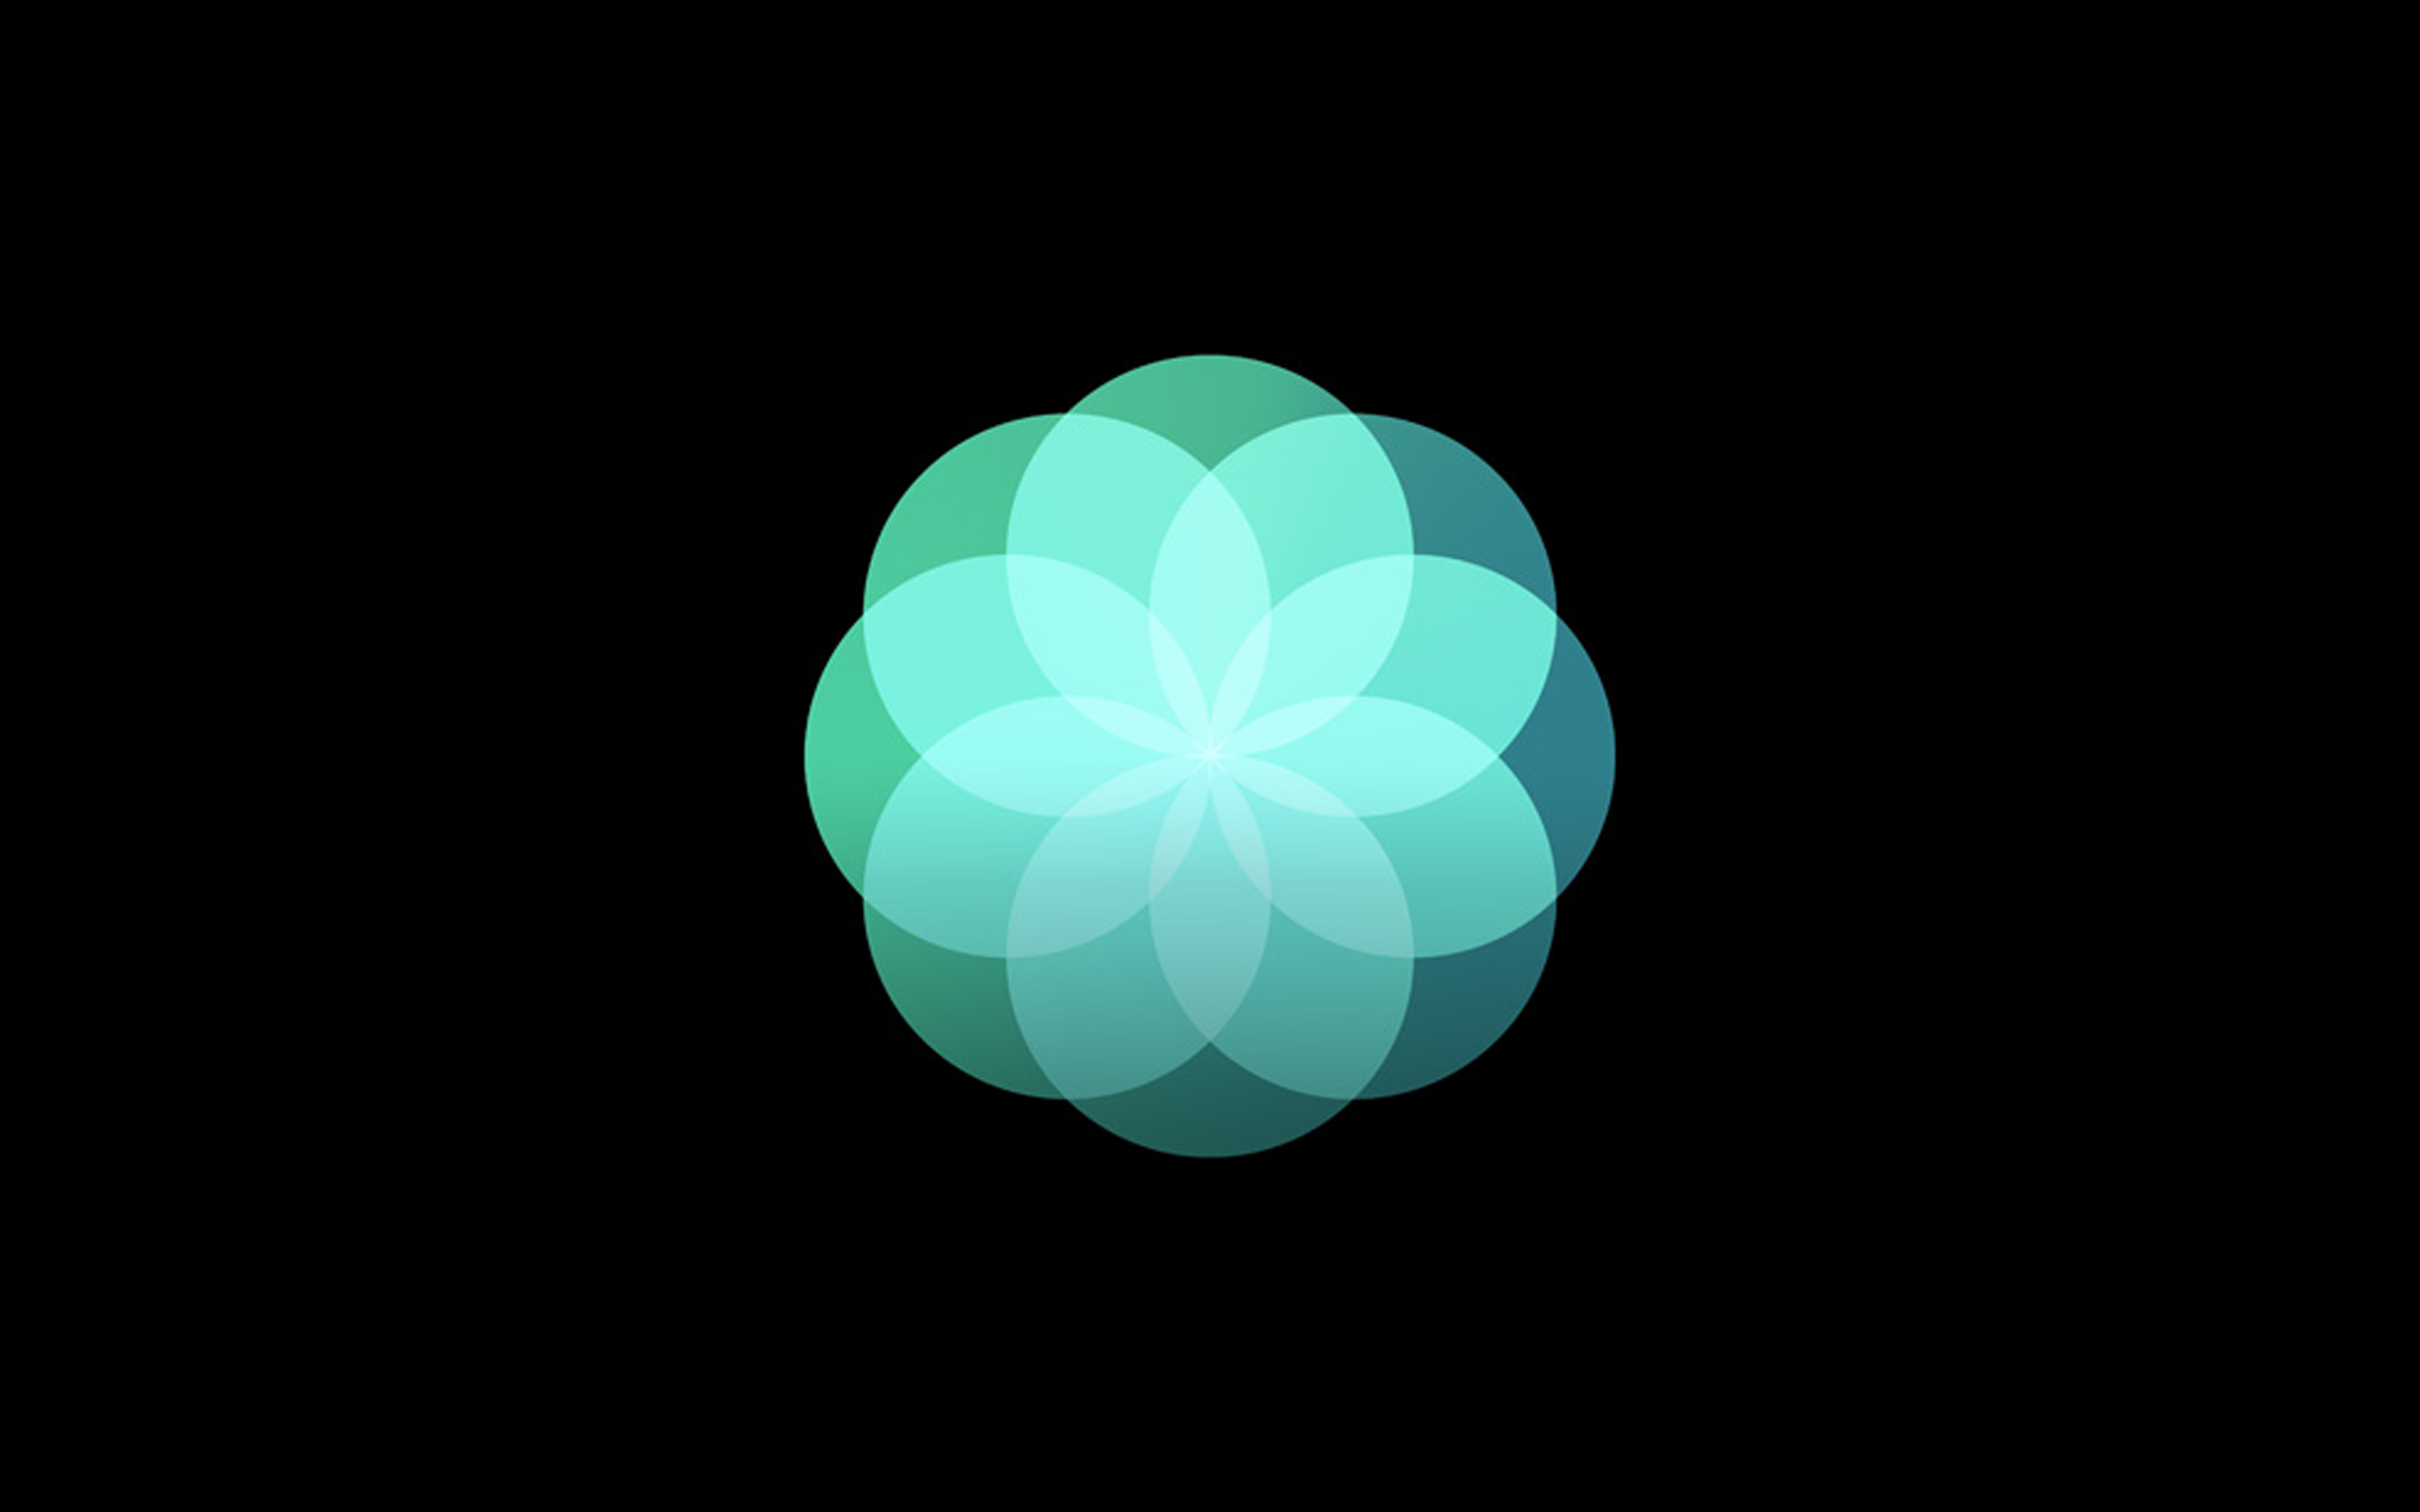 Wallpapers Inspired By The Watchos 3 Breathe App